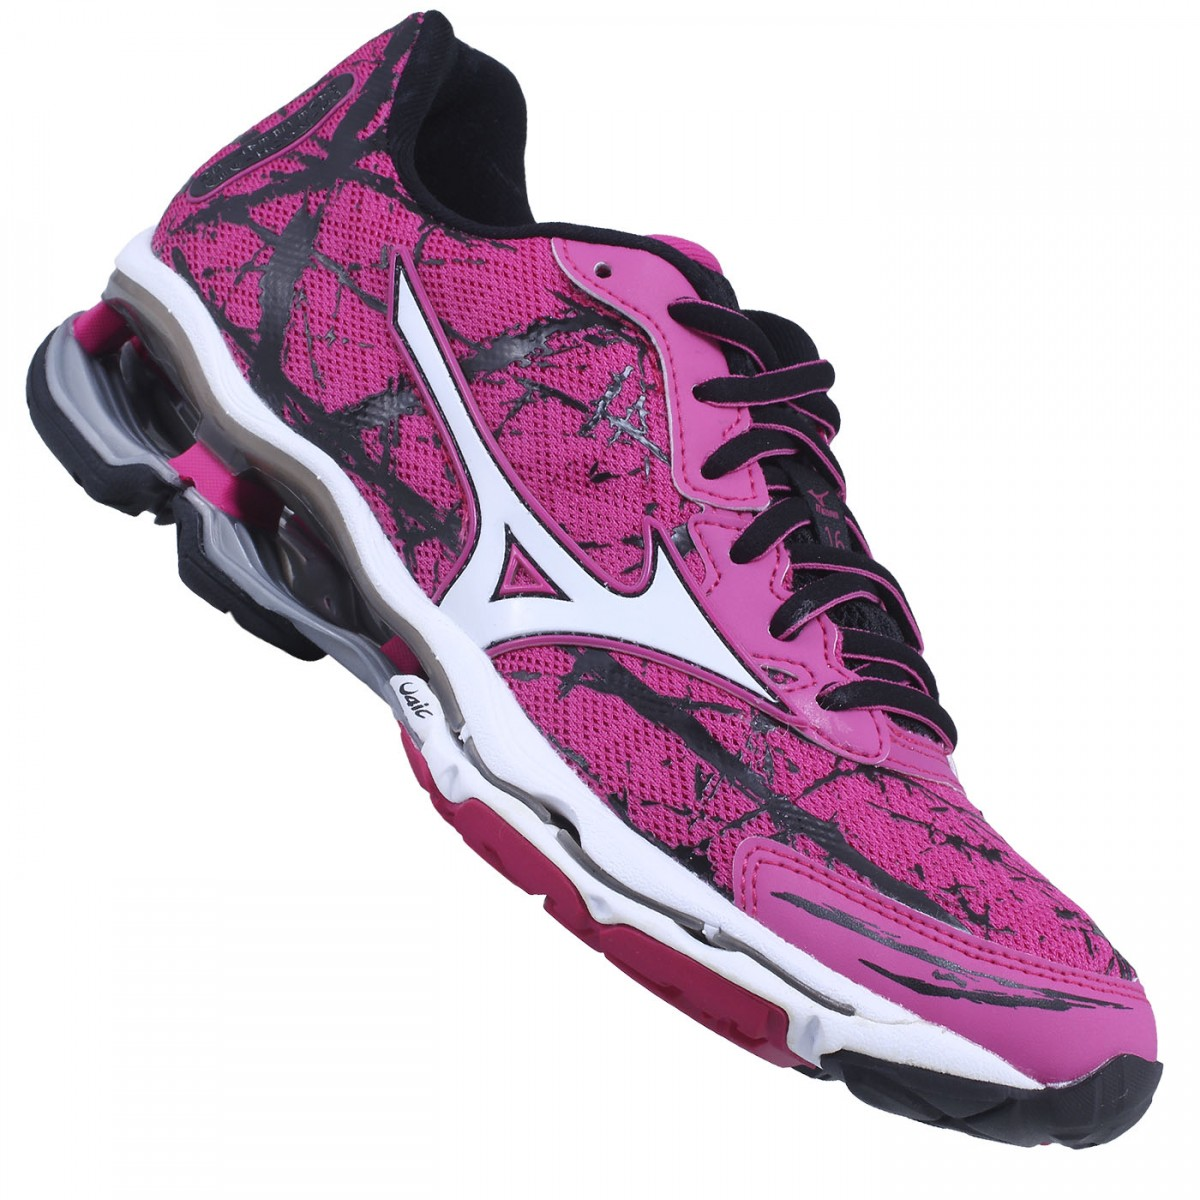 0a9f453a1f4 Tênis Mizuno Wave Creation 16 - Feminino